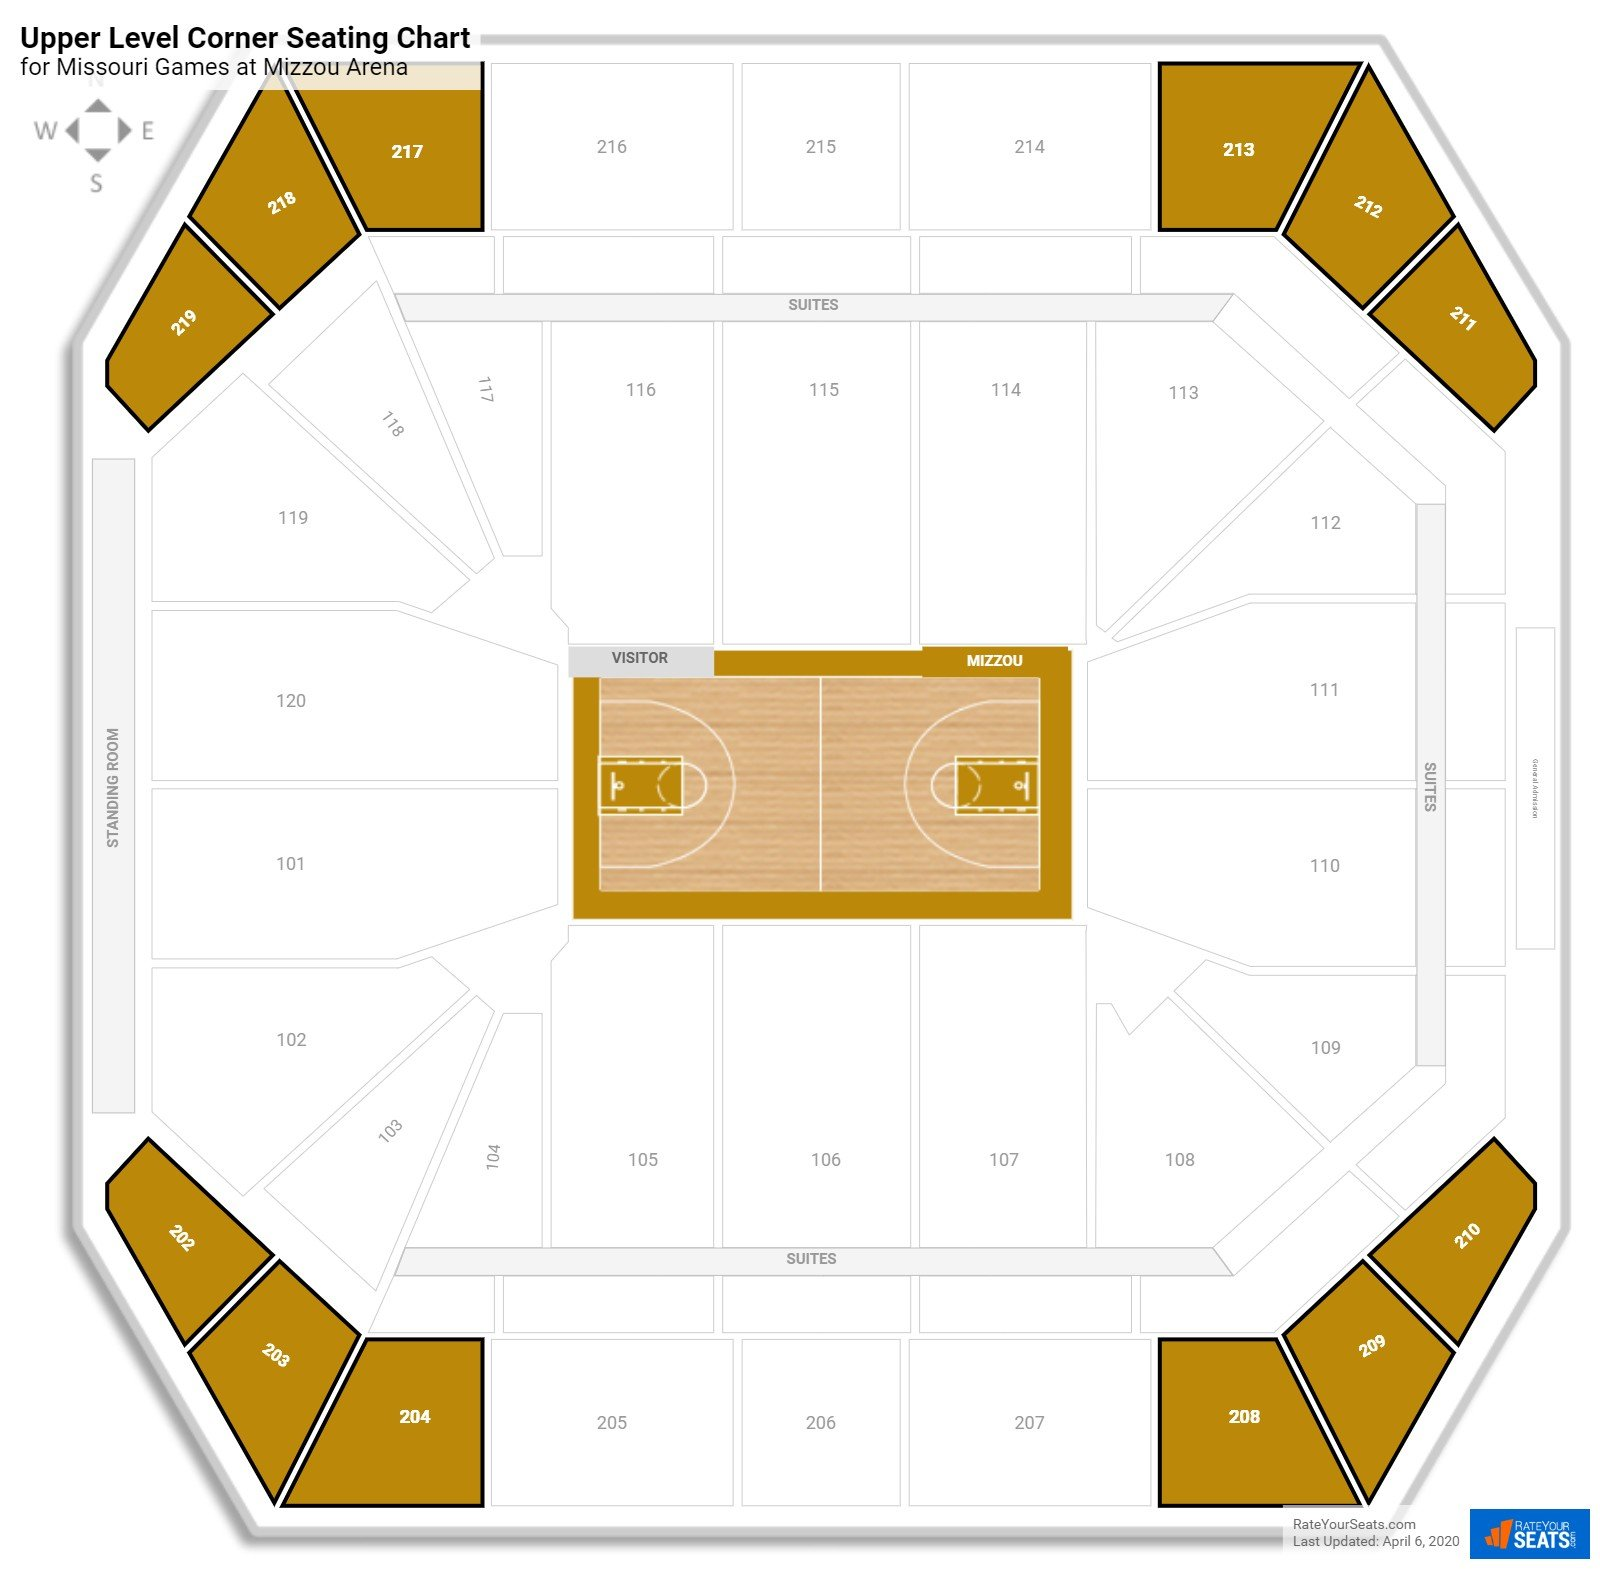 Mizzou Arena Upper Level Corner seating chart